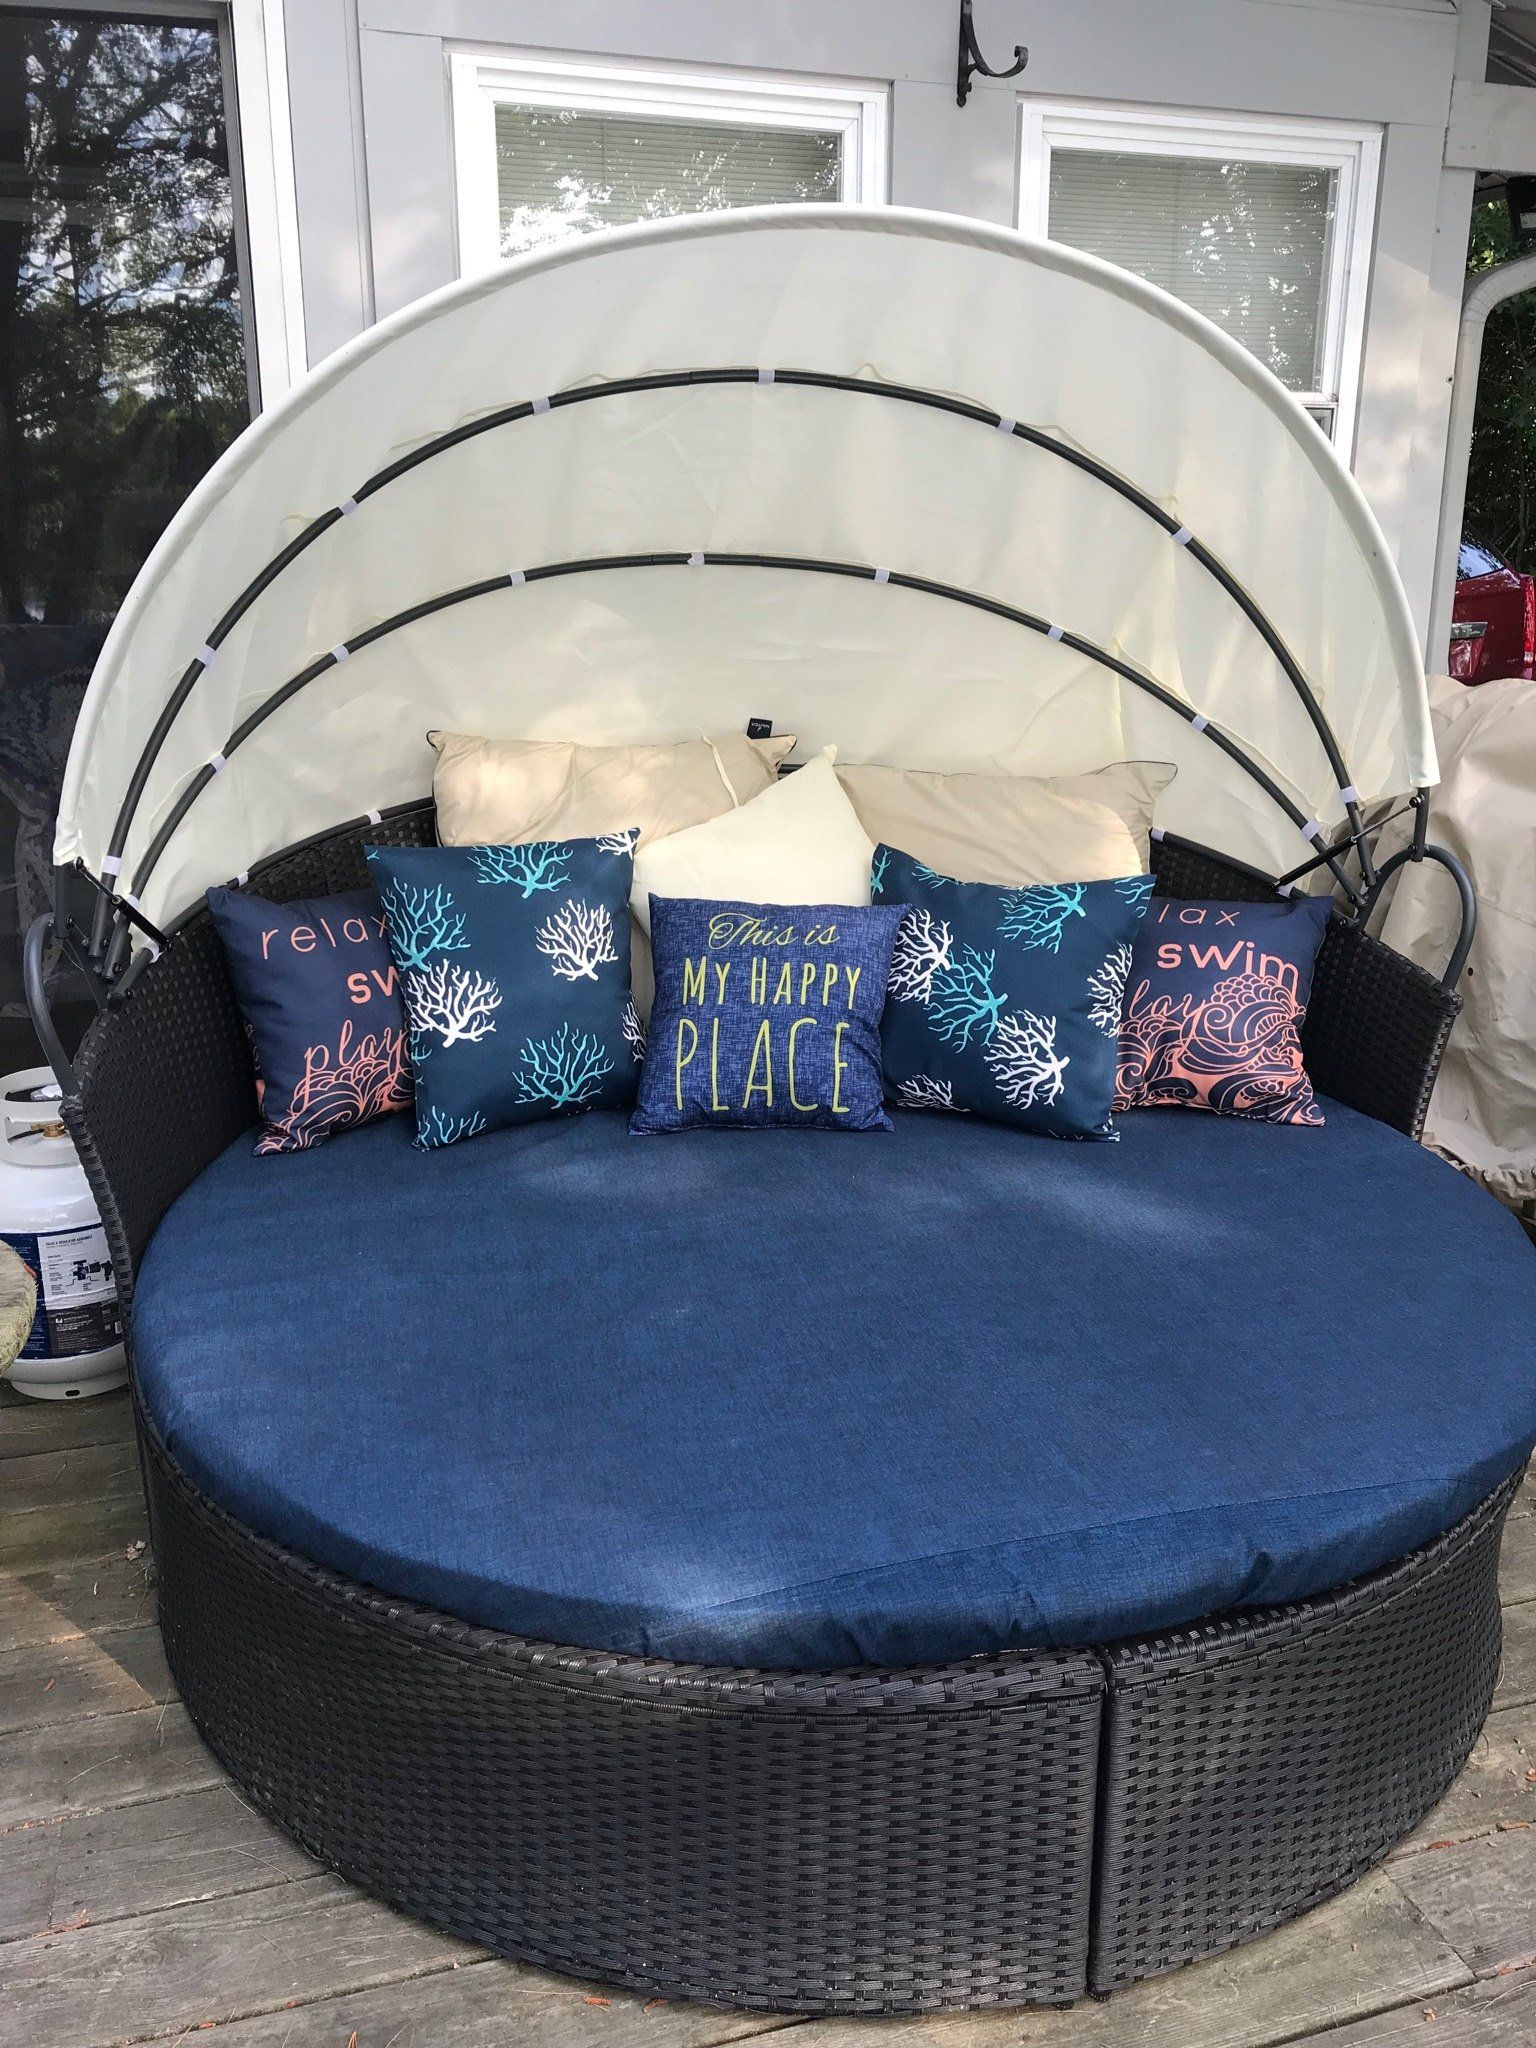 Outdoor Daybed Replacement Cover in 2020 Daybed covers